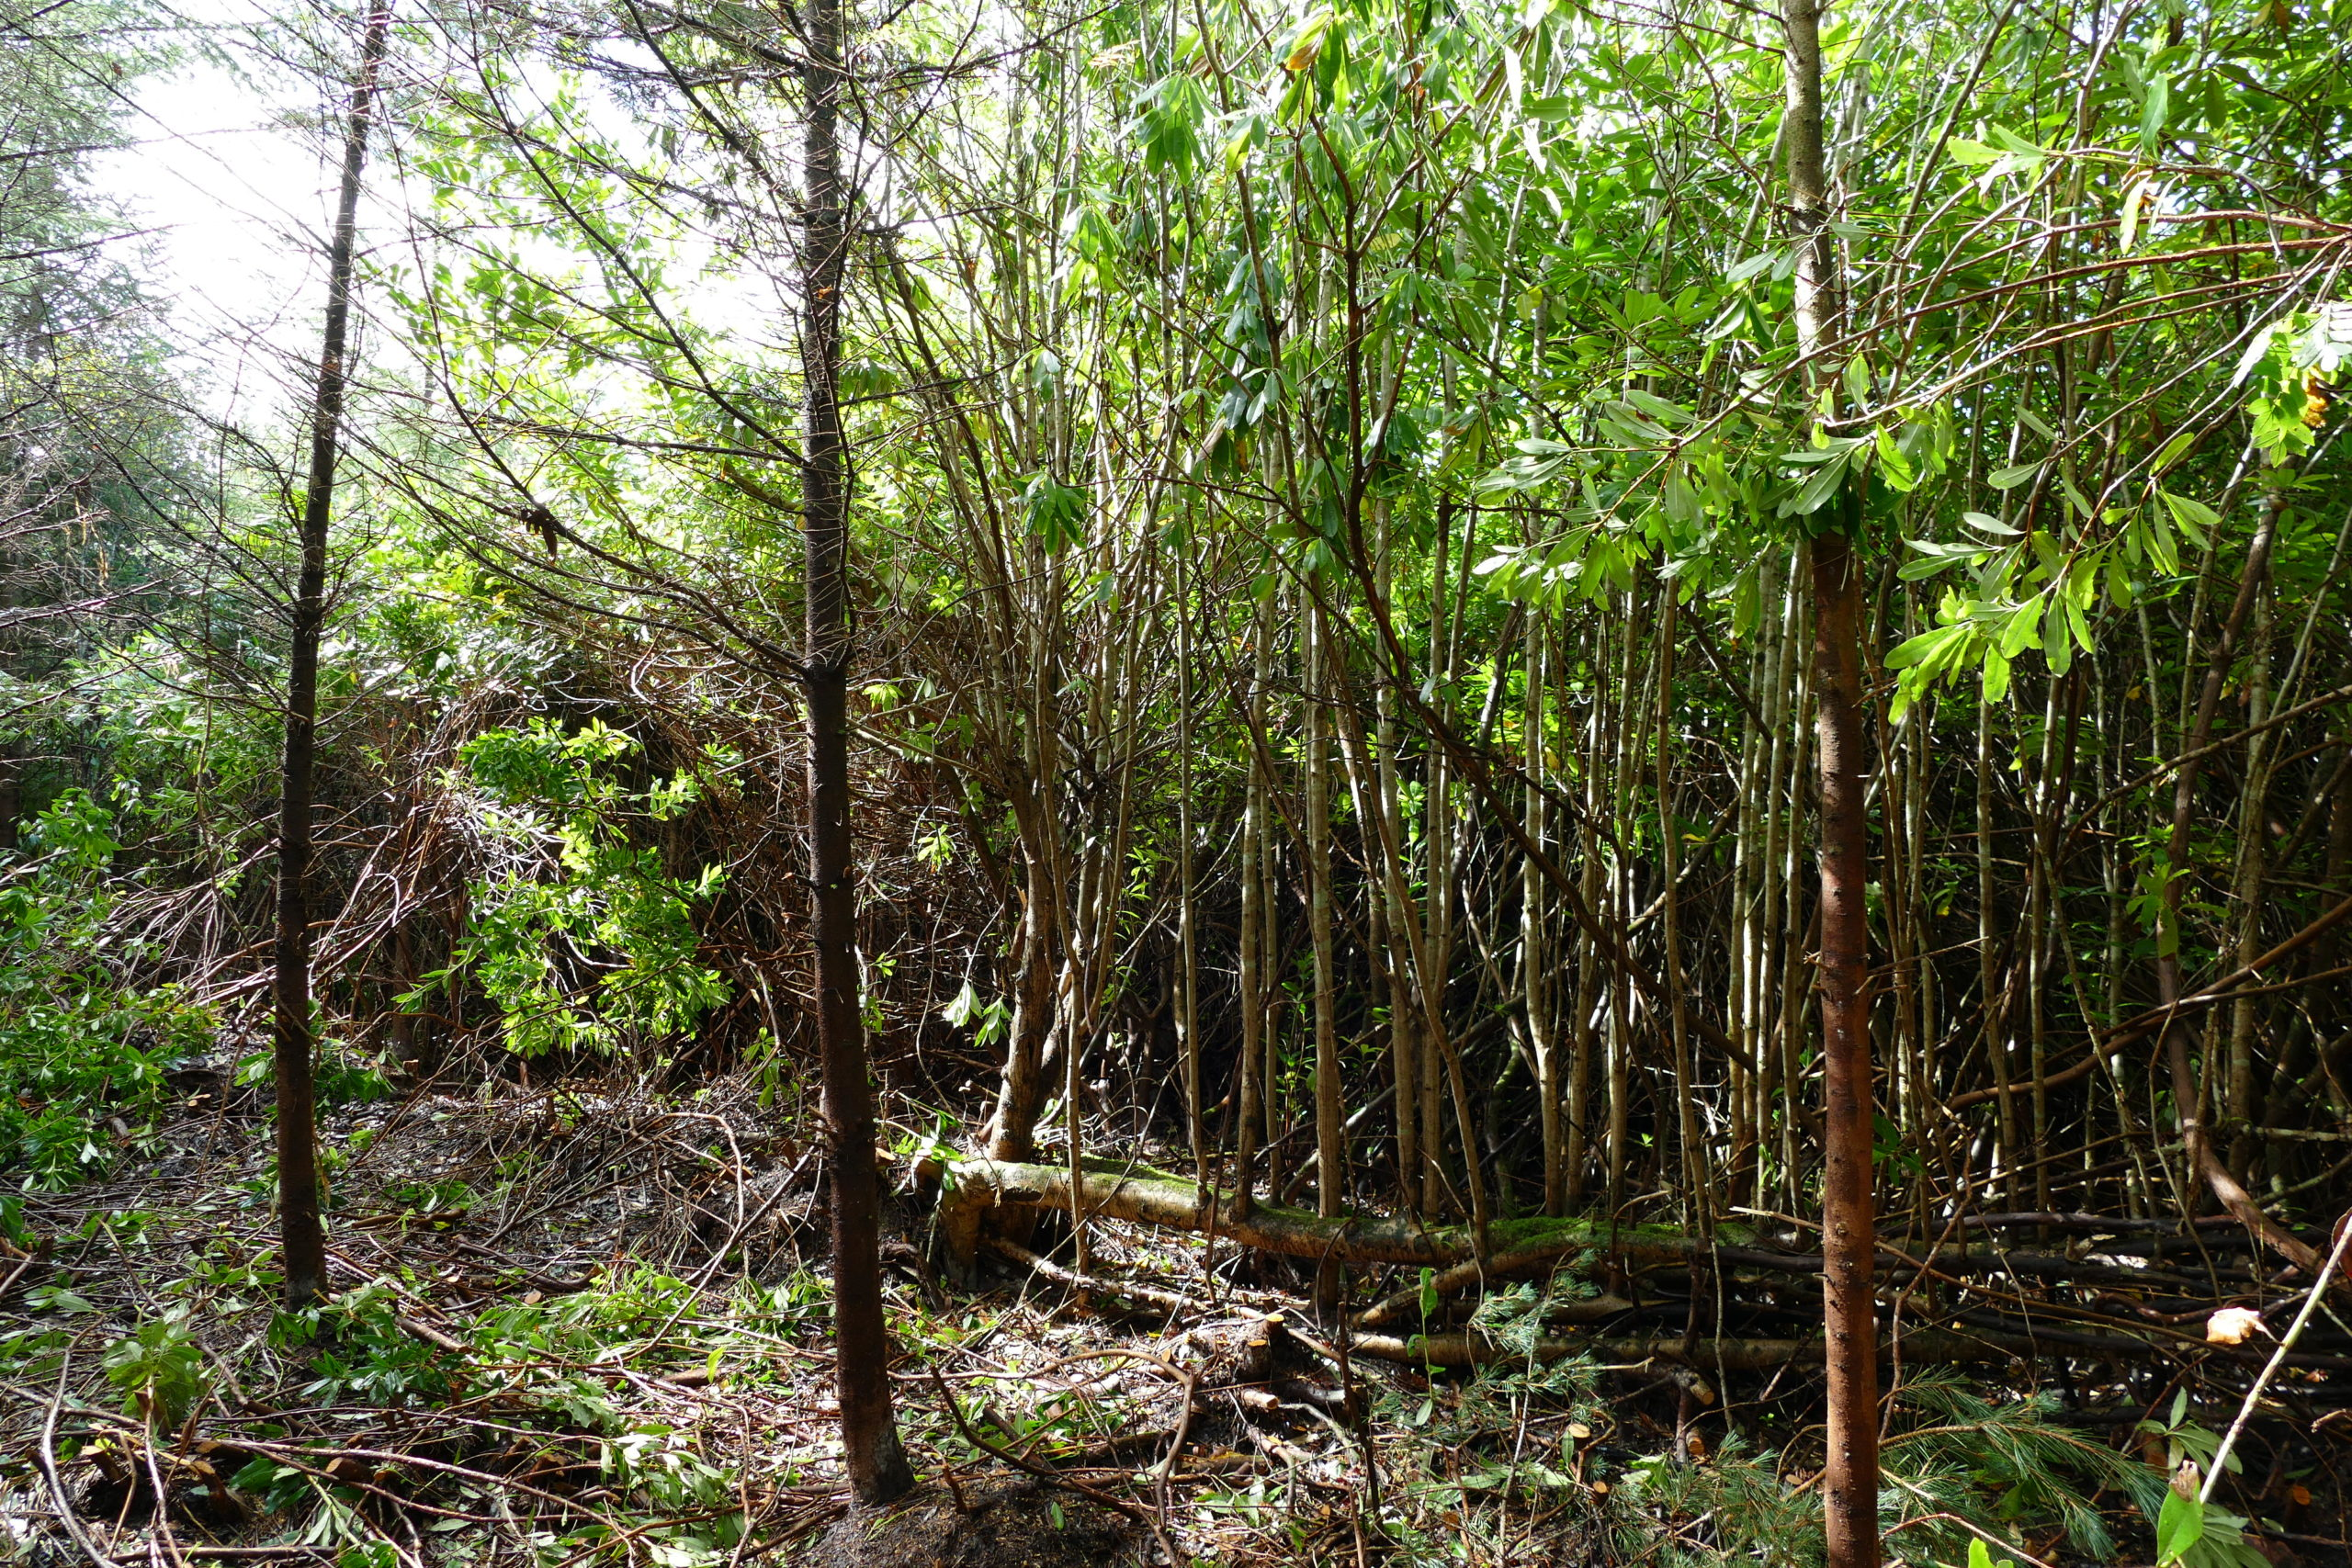 Invasive rhododendron choking a native woodland